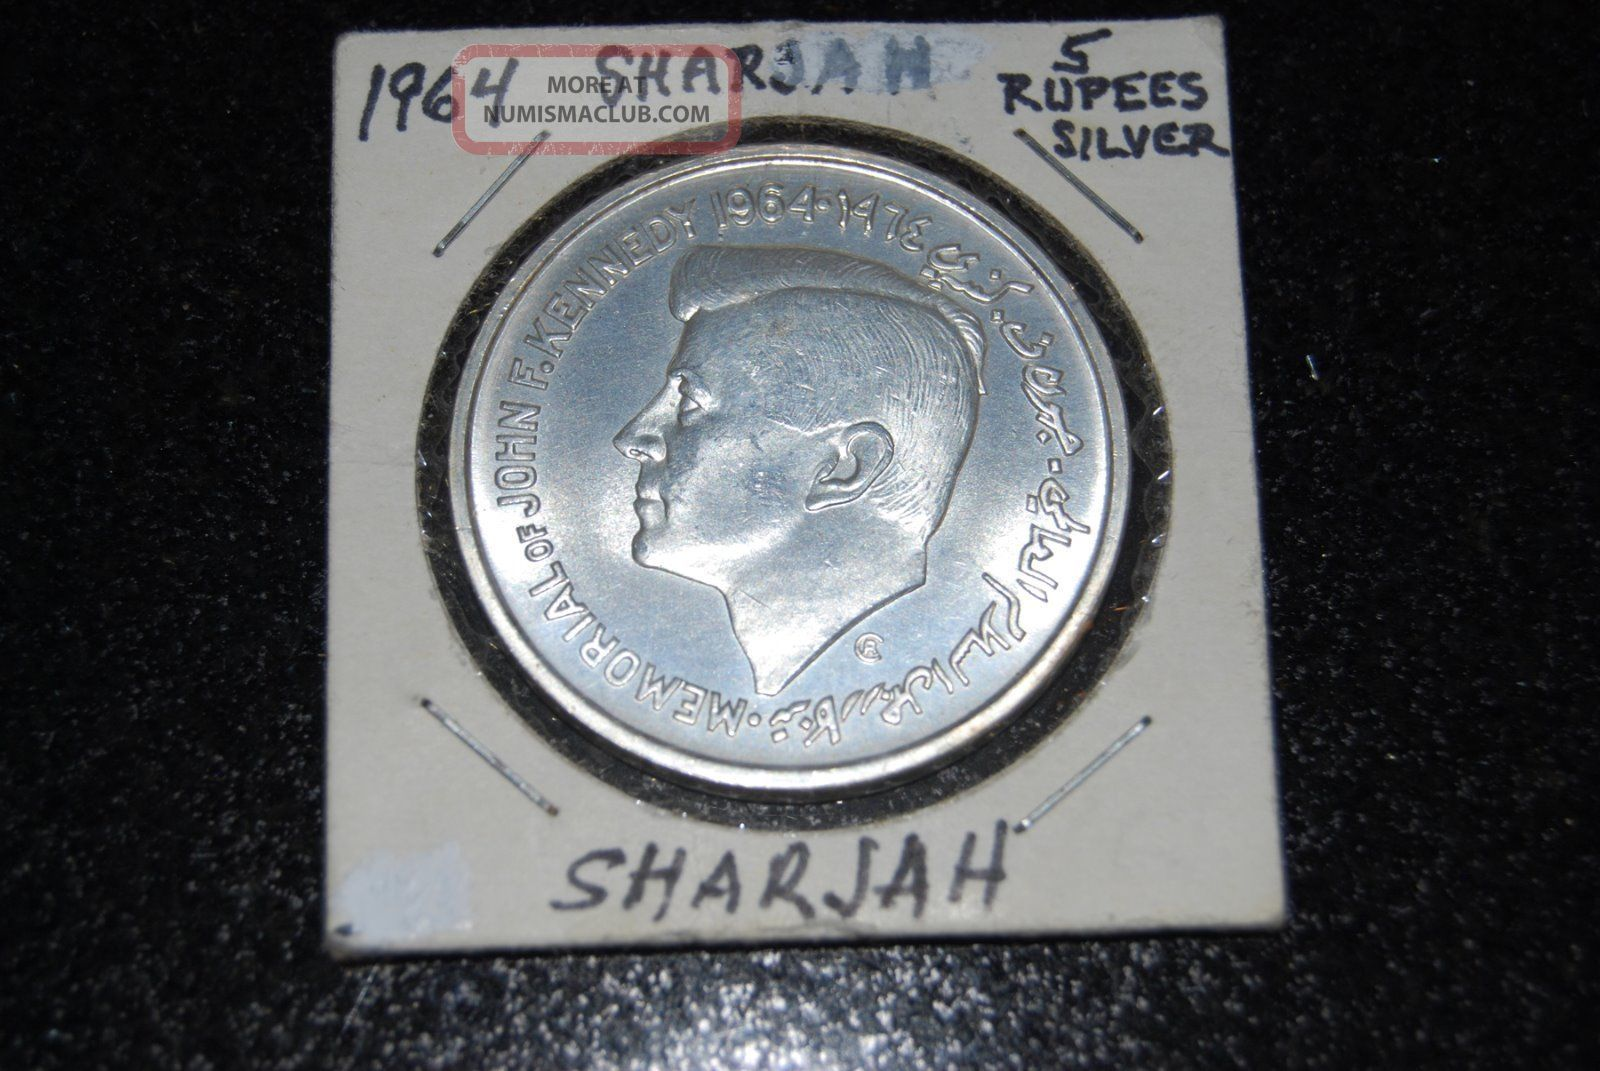 Sharjah Silver Coin 5 Rupees 1964 Uncirculated Middle East photo